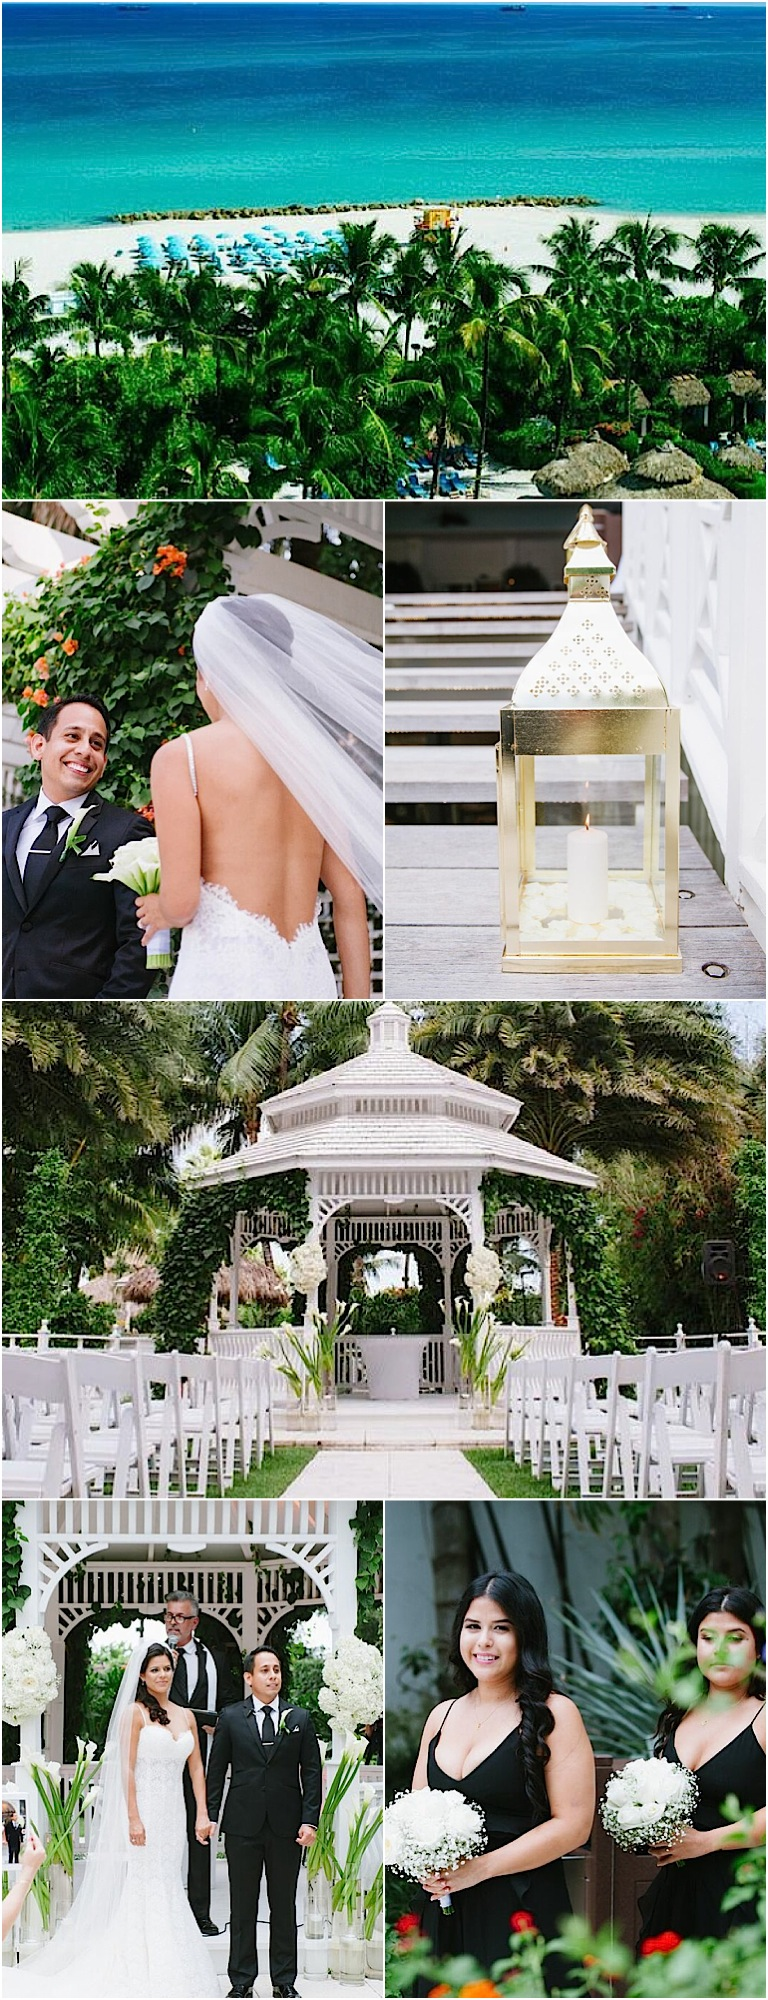 miami-wedding-30-04282015-ky